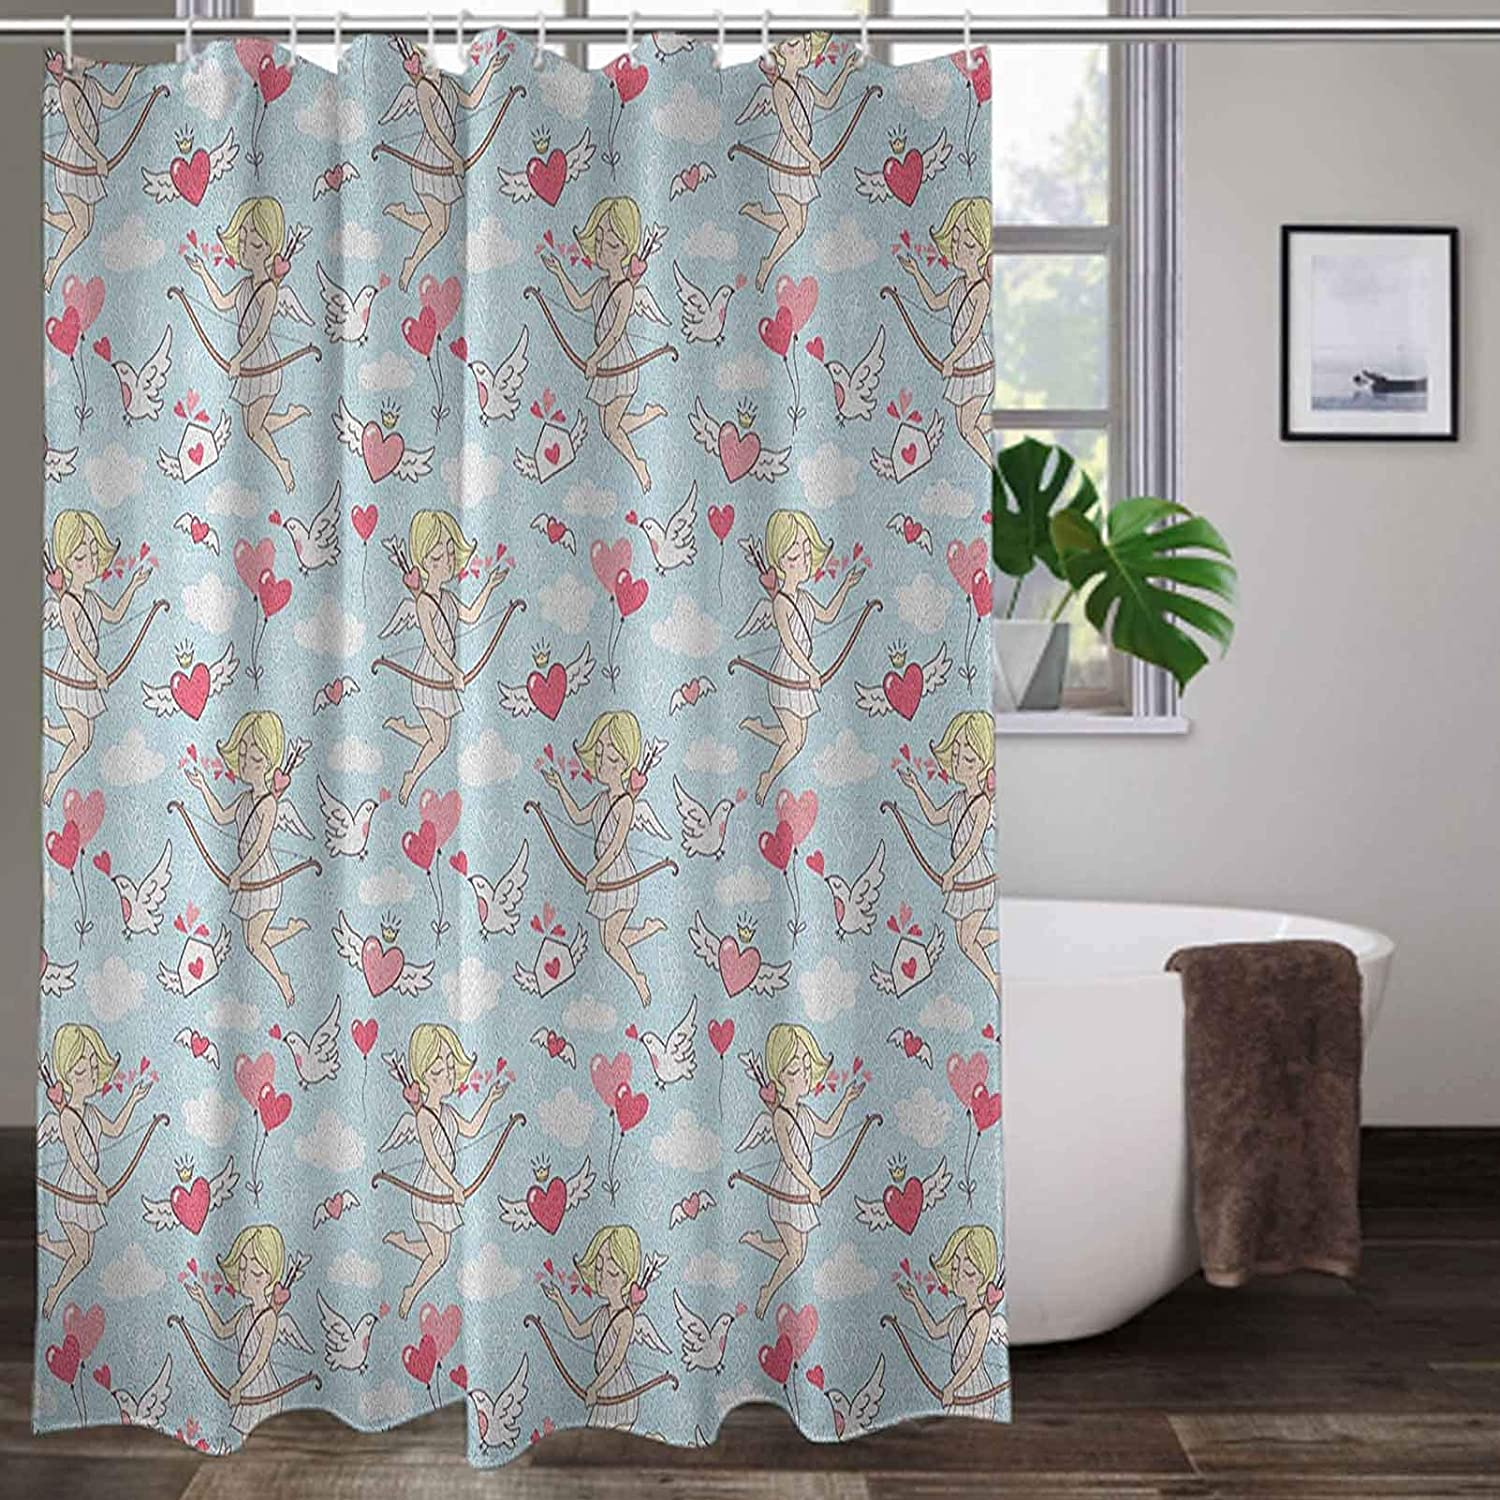 Interestlee Shower Stall Curtain 72 x 72 Inch, Angel Bathroom Decor Curtain - Cupid Girls Winged Hearts Flying in The Sky Doves Clouds Happiness, B Coral Baby Blue White